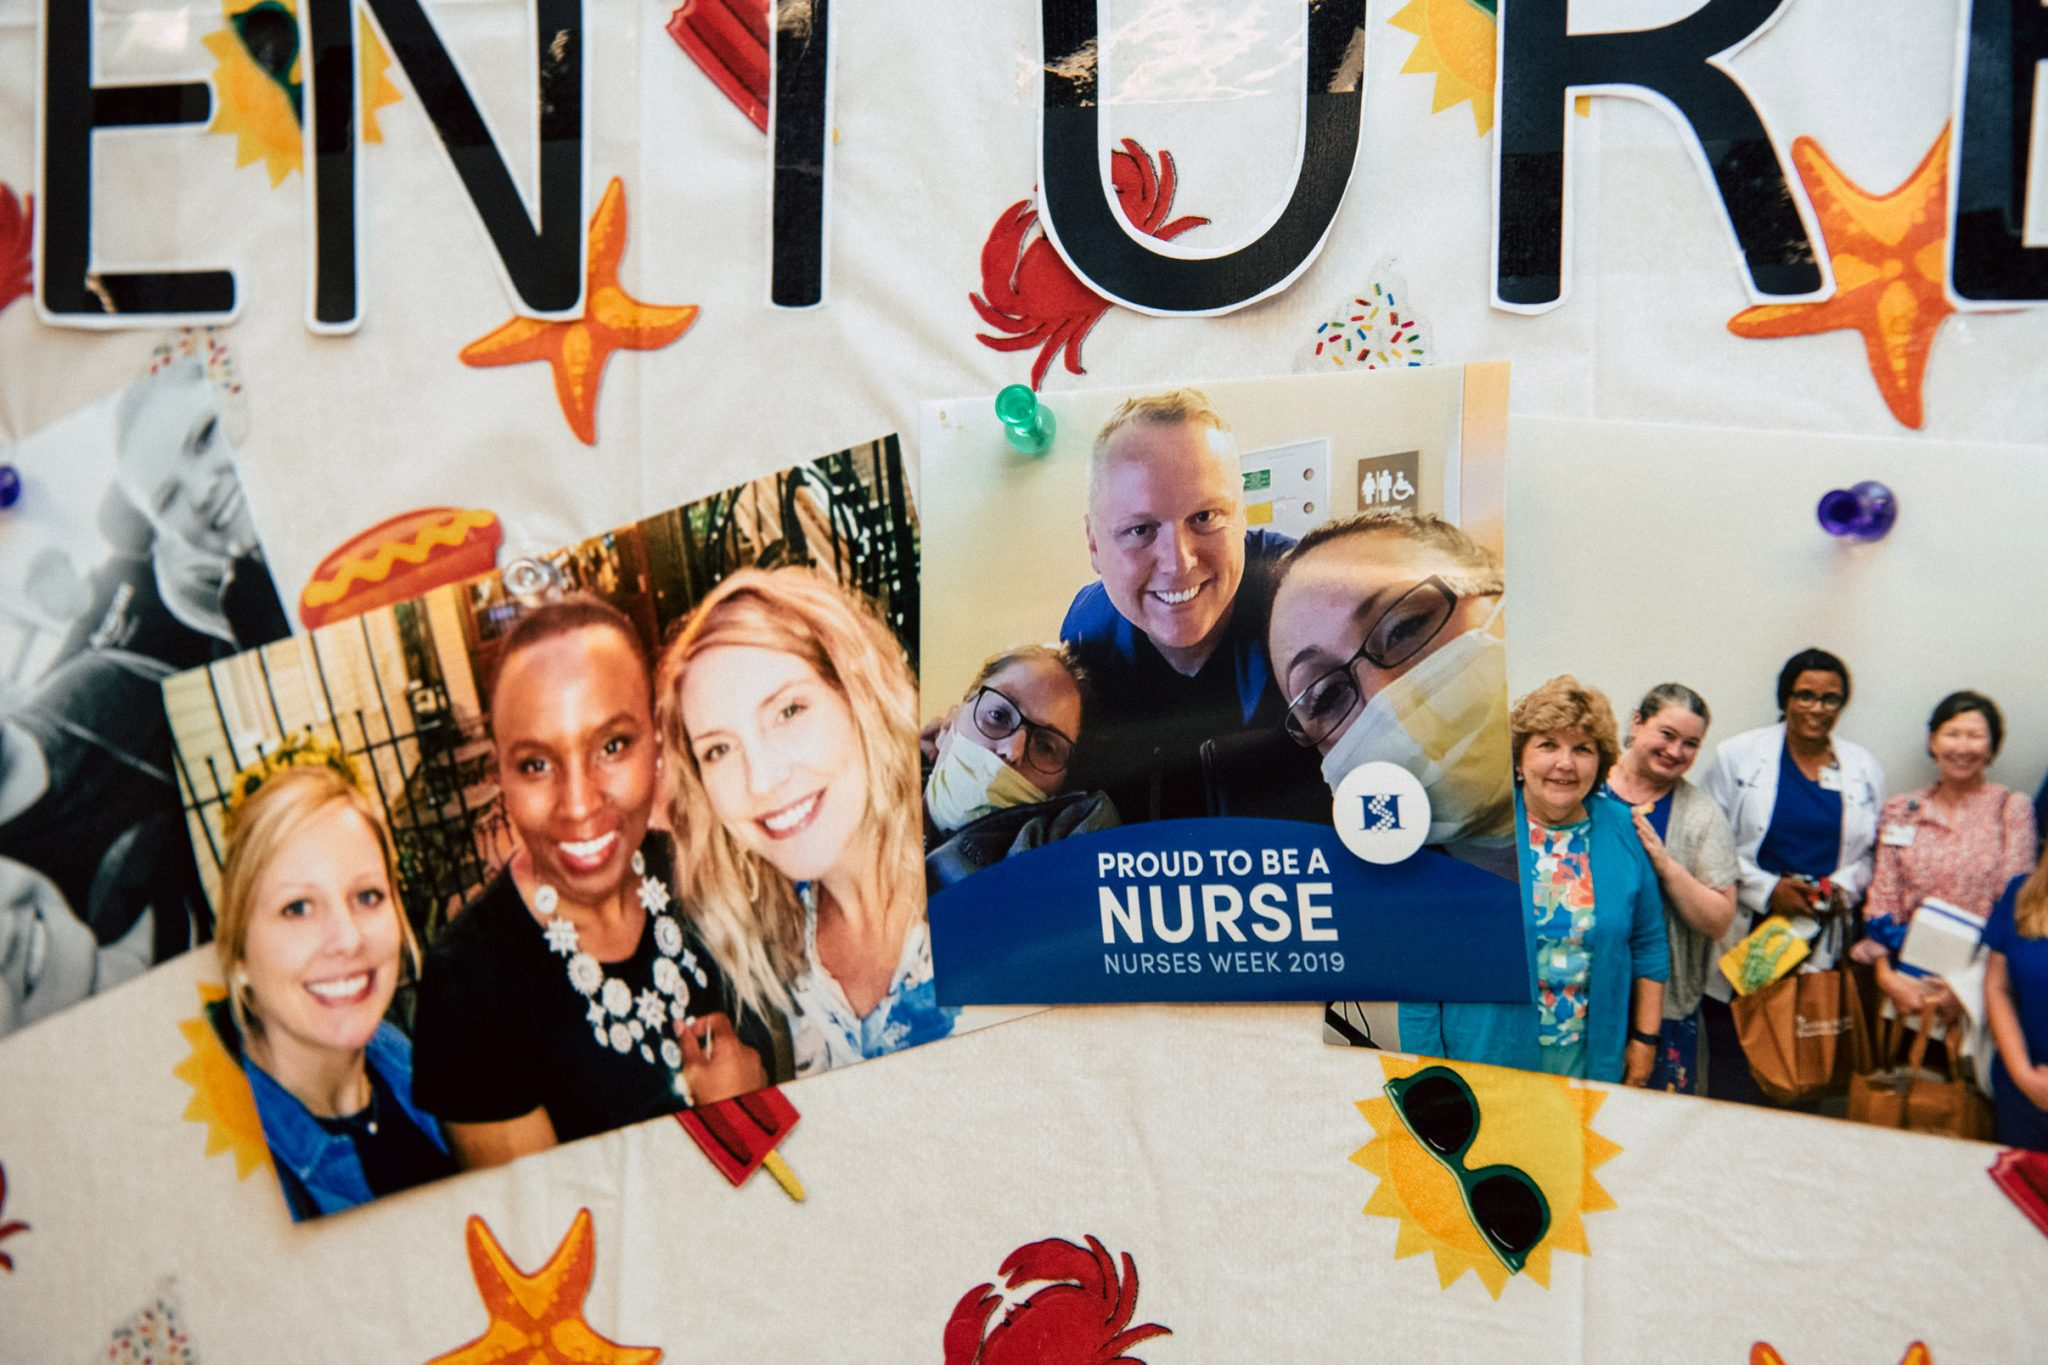 """Photos pinned to a decorated cork board. One is of Chris with two other nurses with a """"Proud to be a nurse. Nurses week 2019"""" graphic printed on it."""